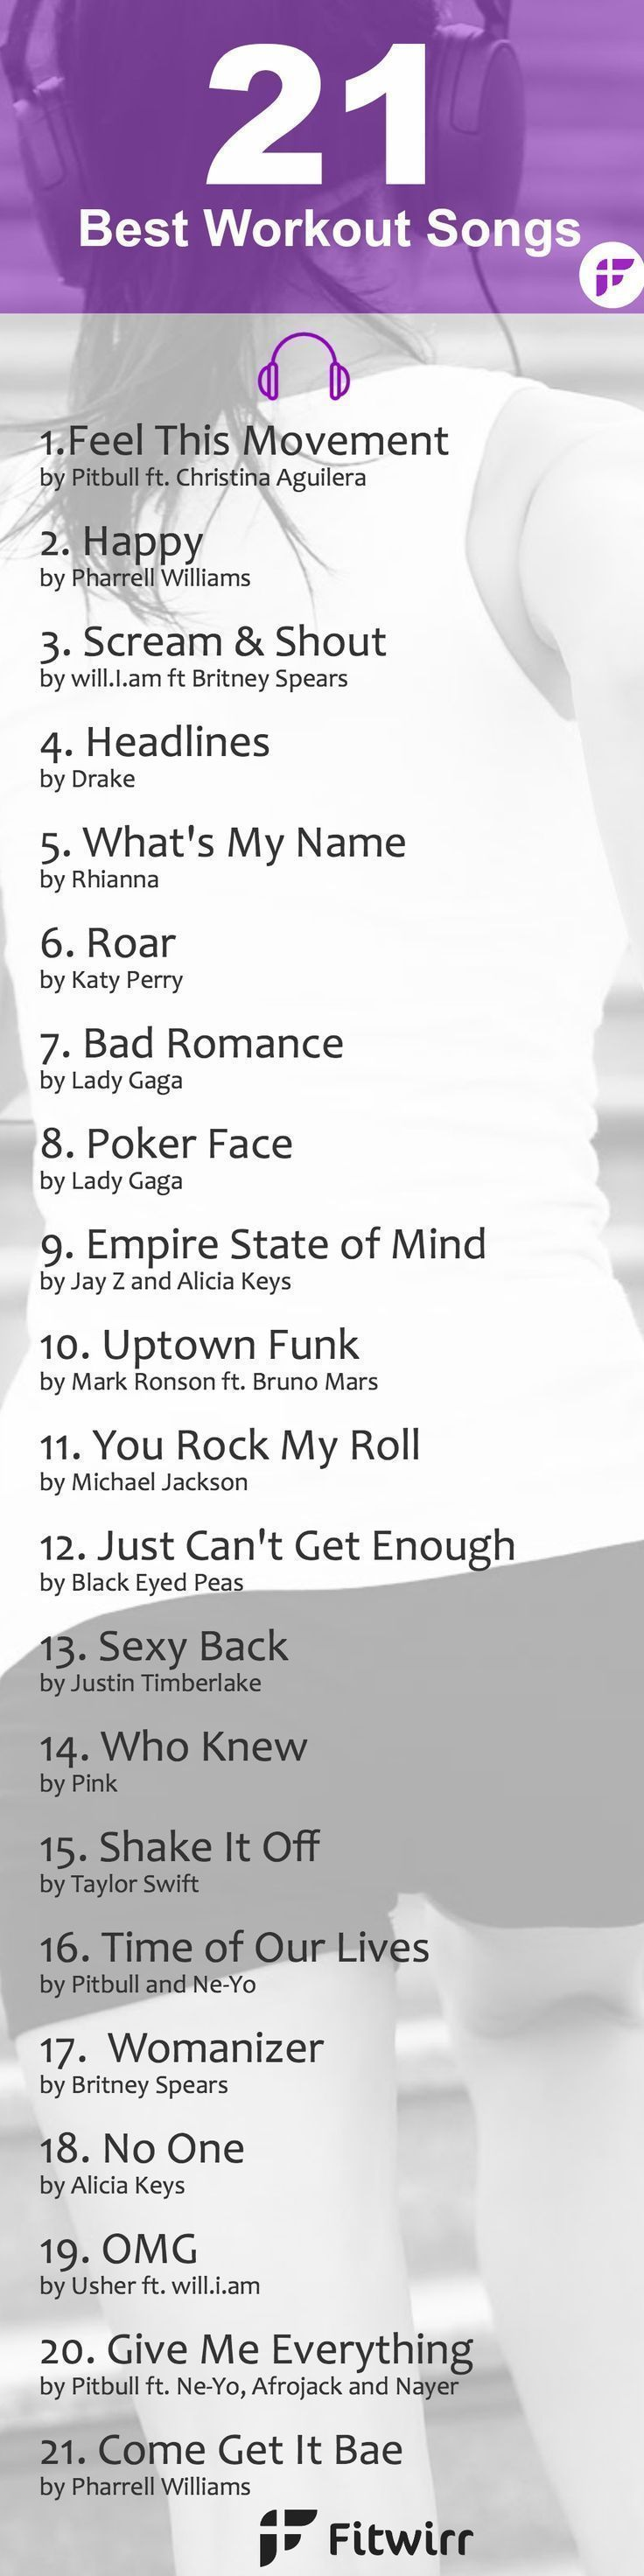 21 Good Workout Songs to Power Through Your Workou... - #Good #Power #rupiah #Songs #Workou #Workout